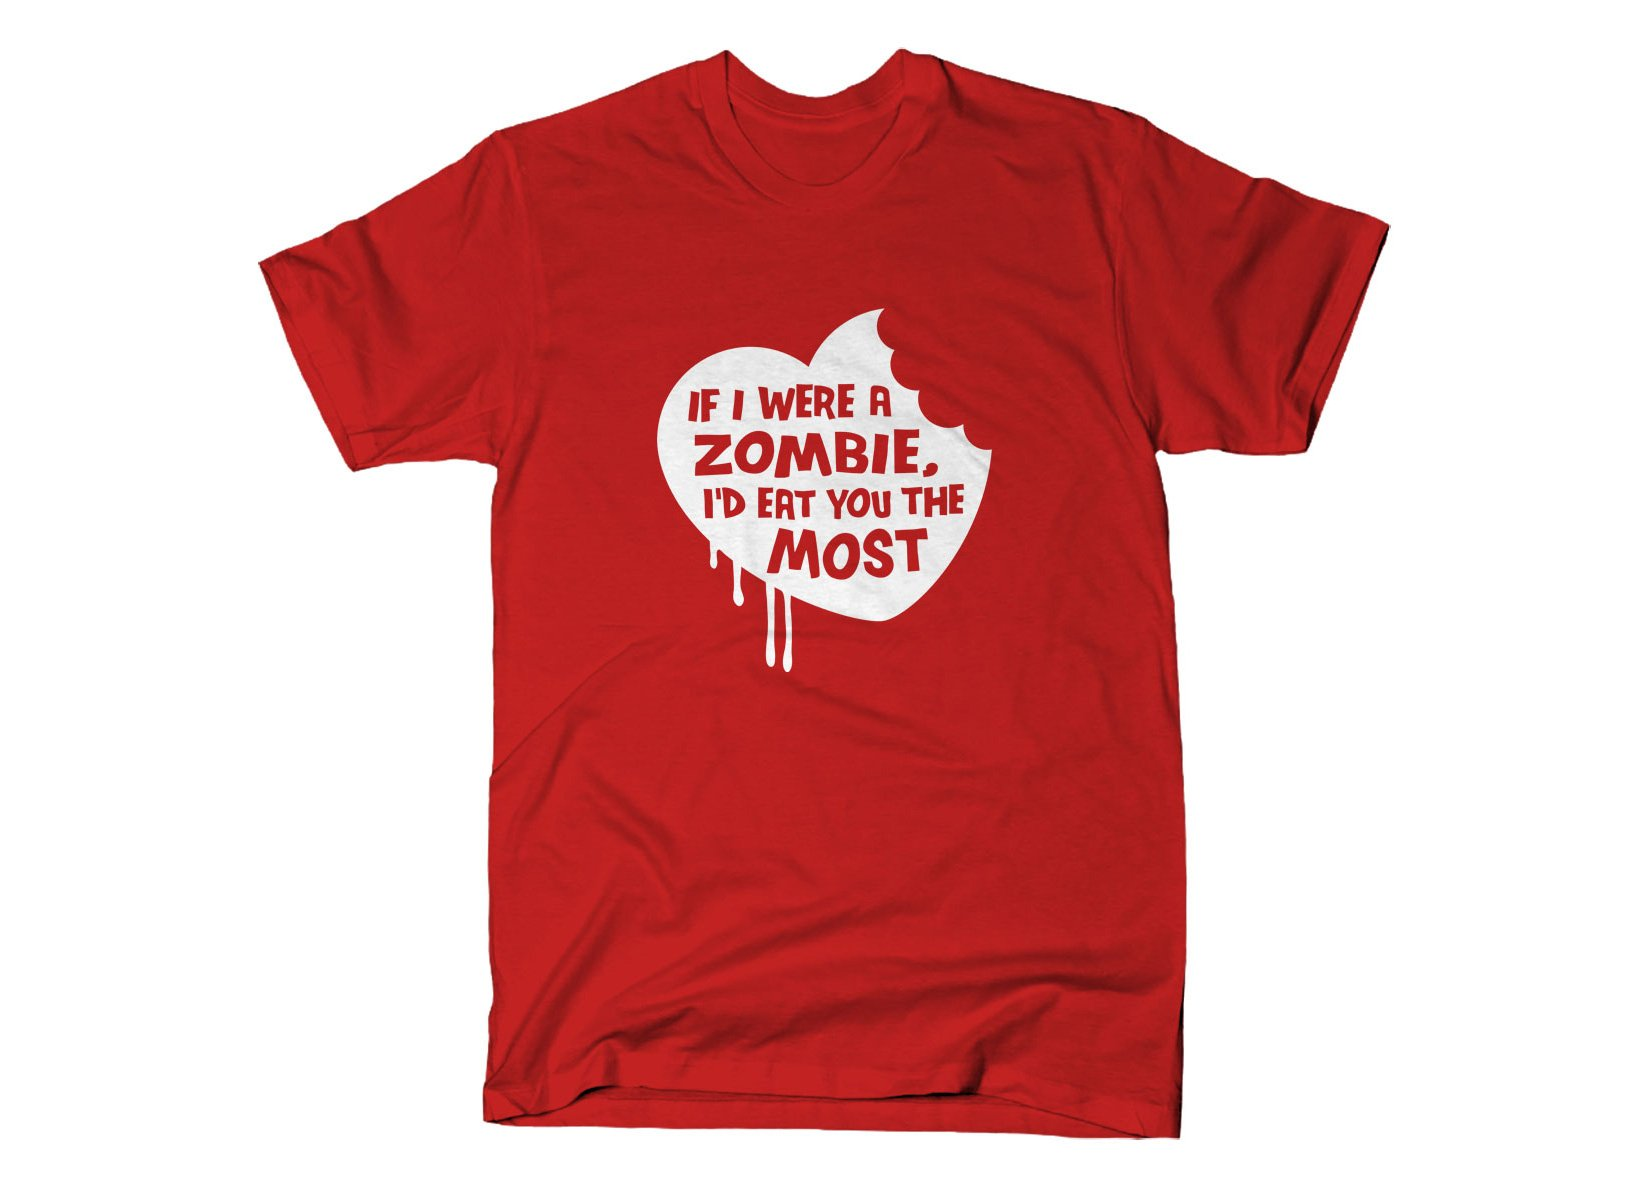 If I Were A Zombie, I'd Eat You The Most on Mens T-Shirt